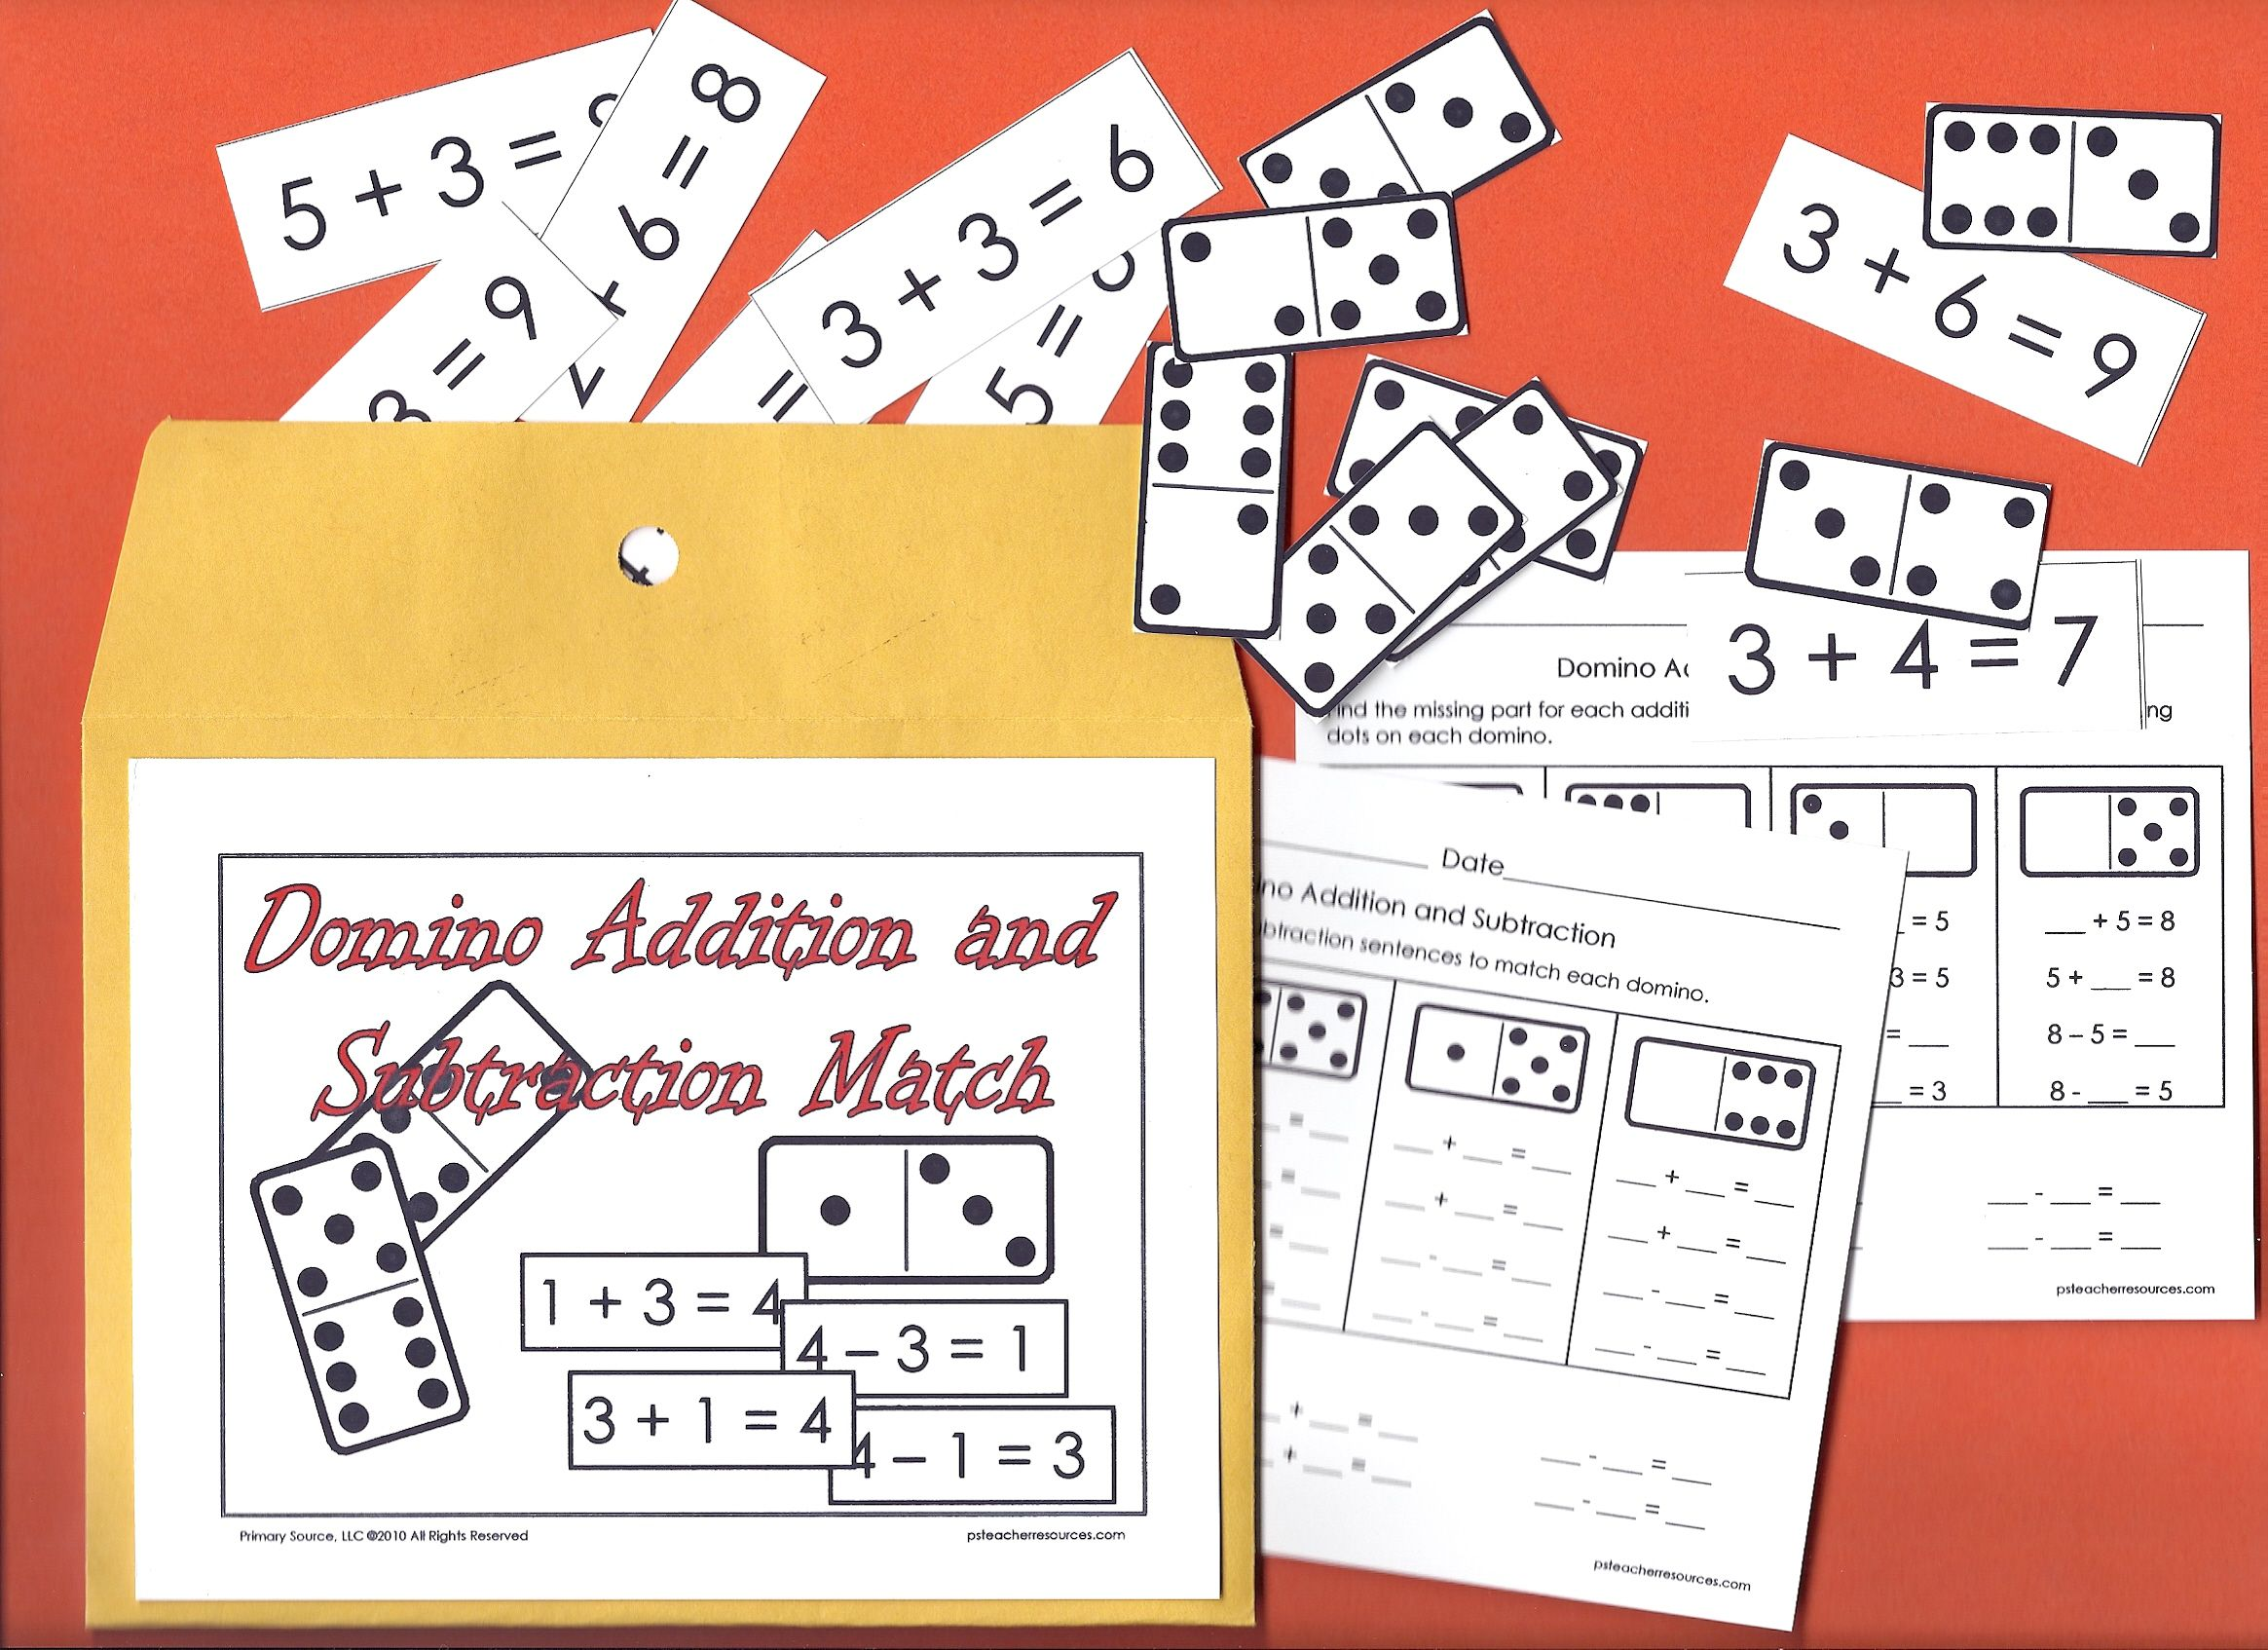 Addition Subtraction Match Dominoes